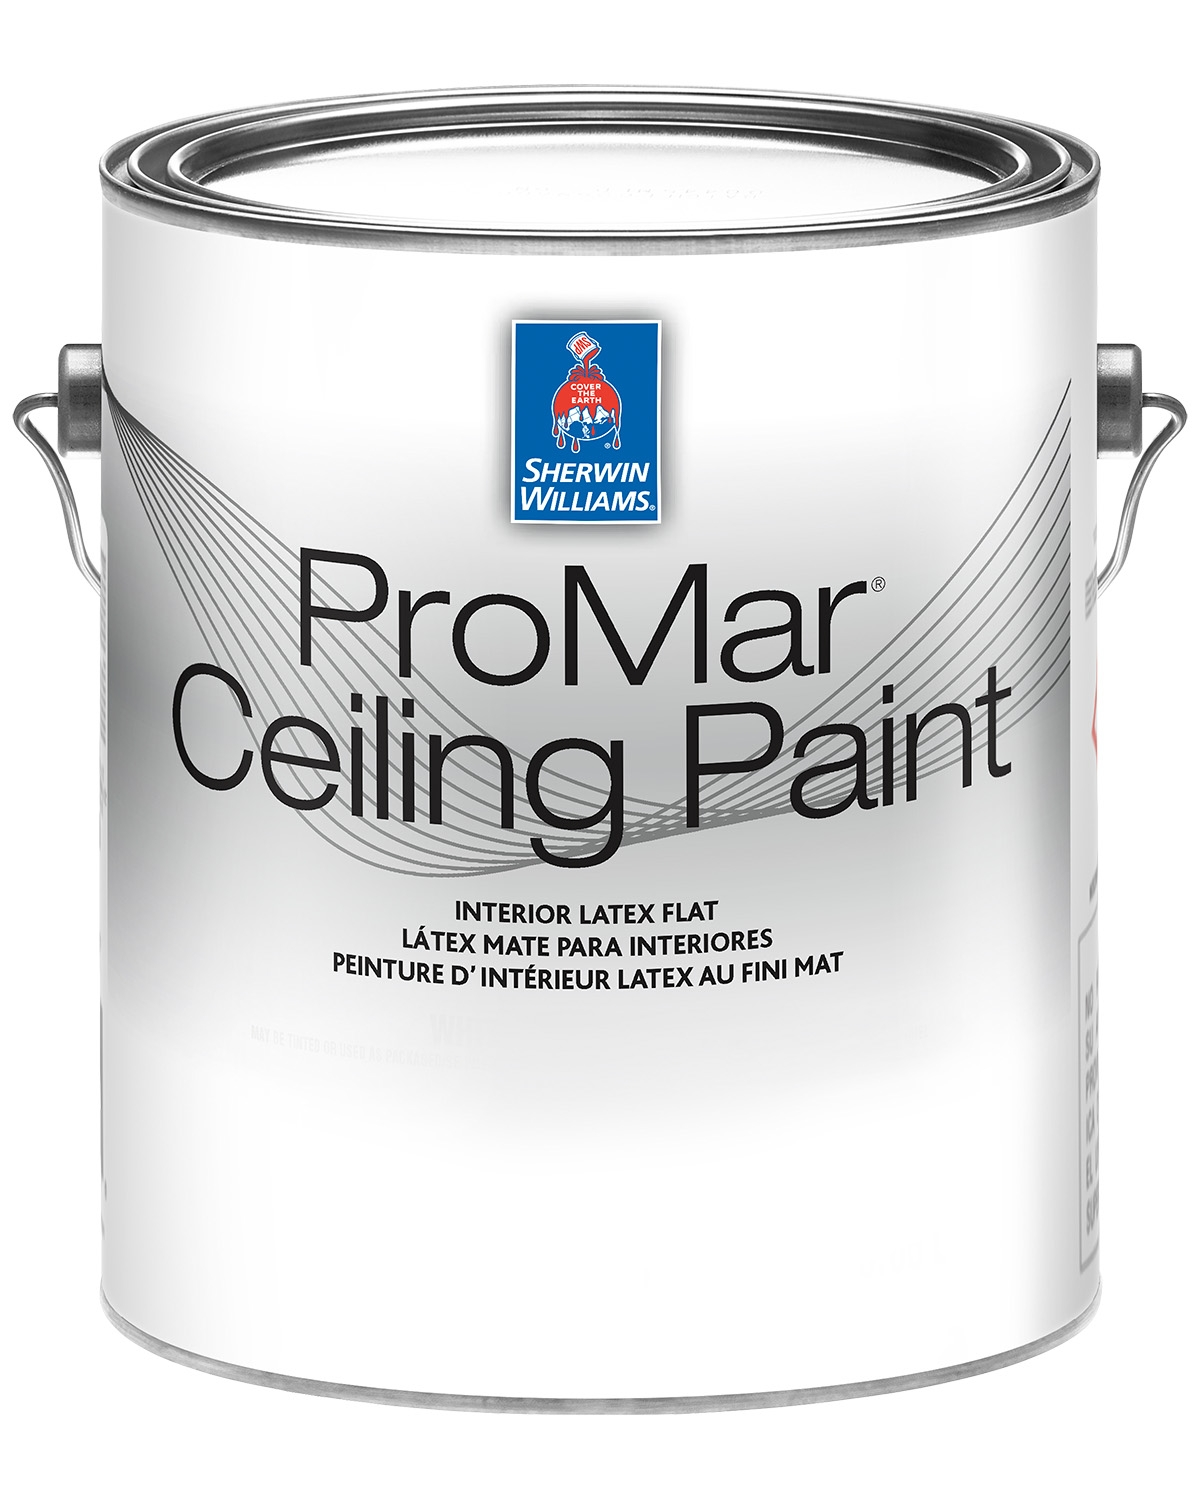 Sherwin Williams 5 Gallon Ceiling Paint Cost